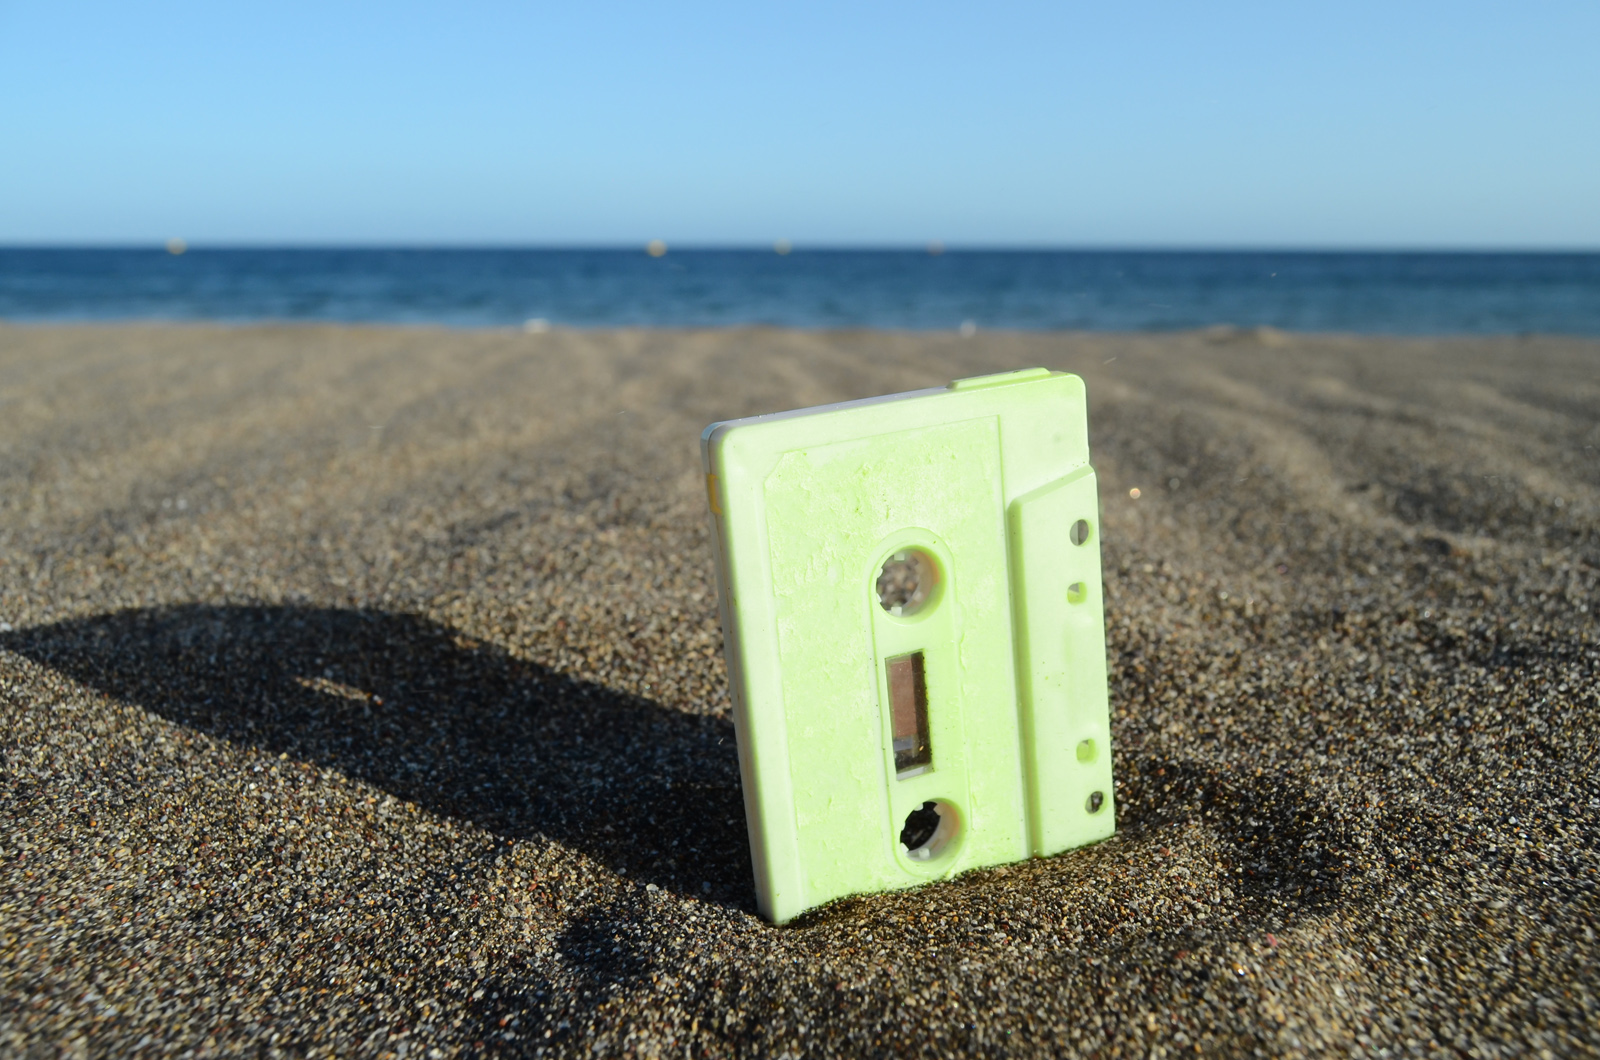 Audio cassette tape in the sand